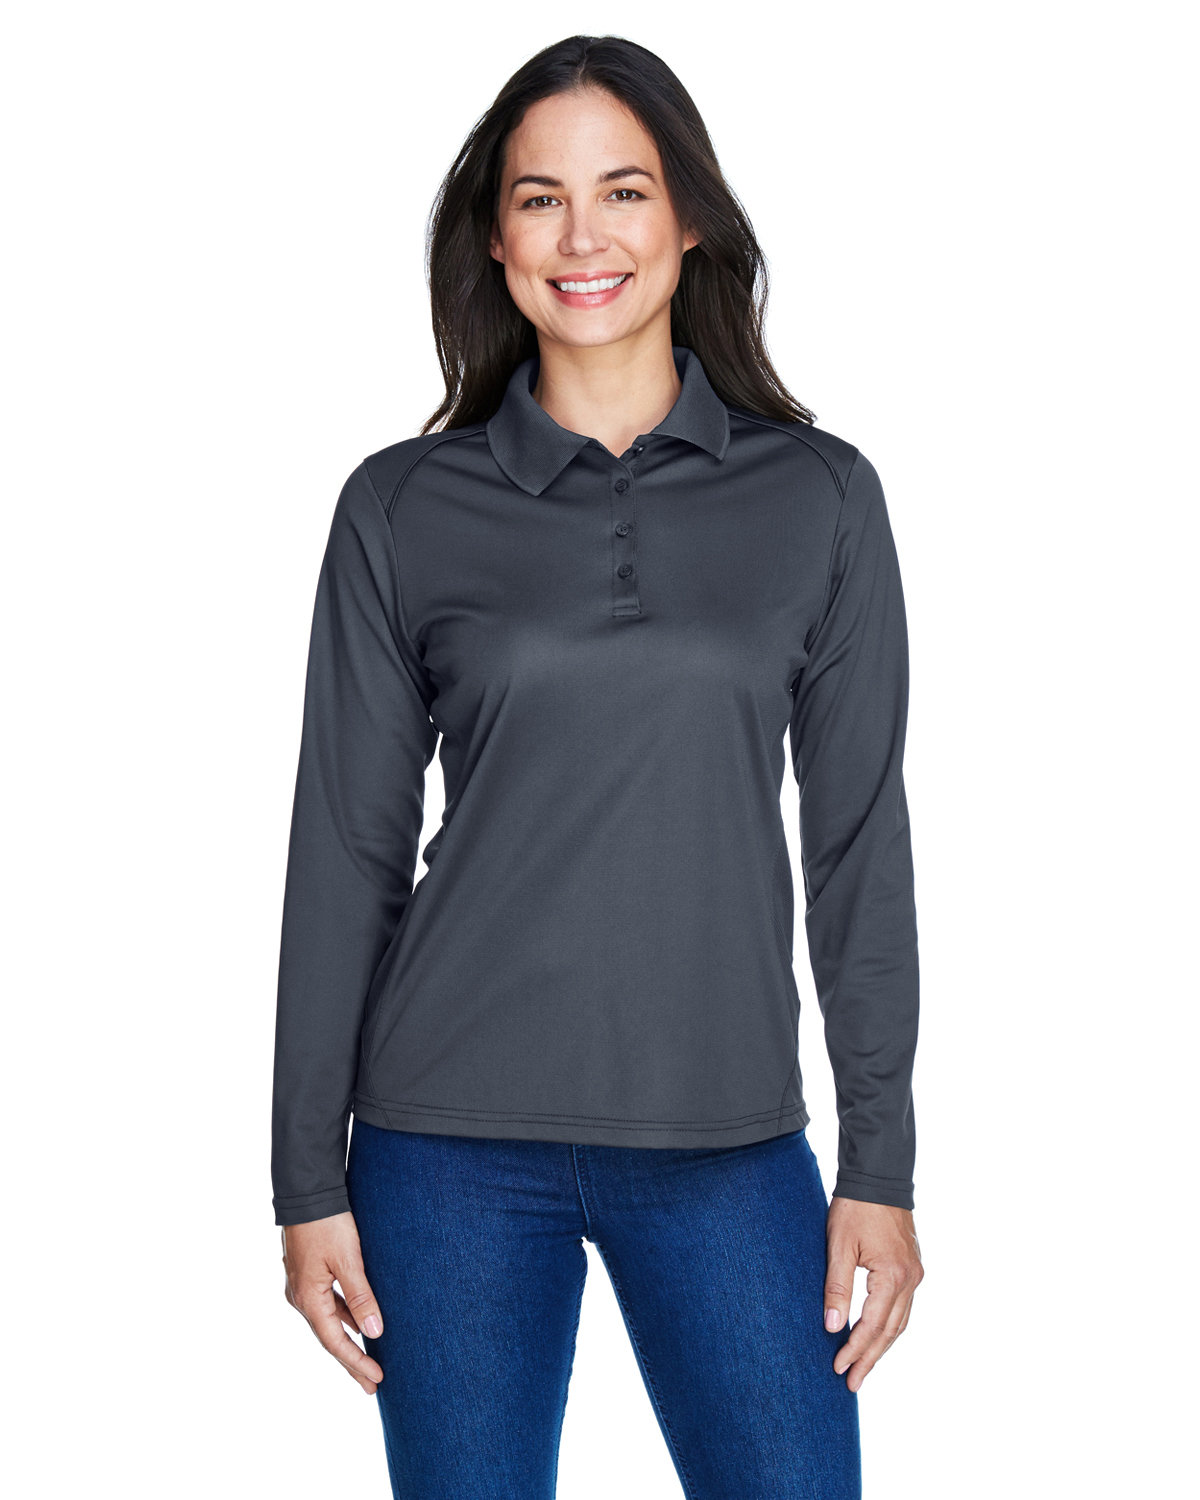 Extreme Ladies' Eperformance™ Snag Protection Long-Sleeve Polo CARBON